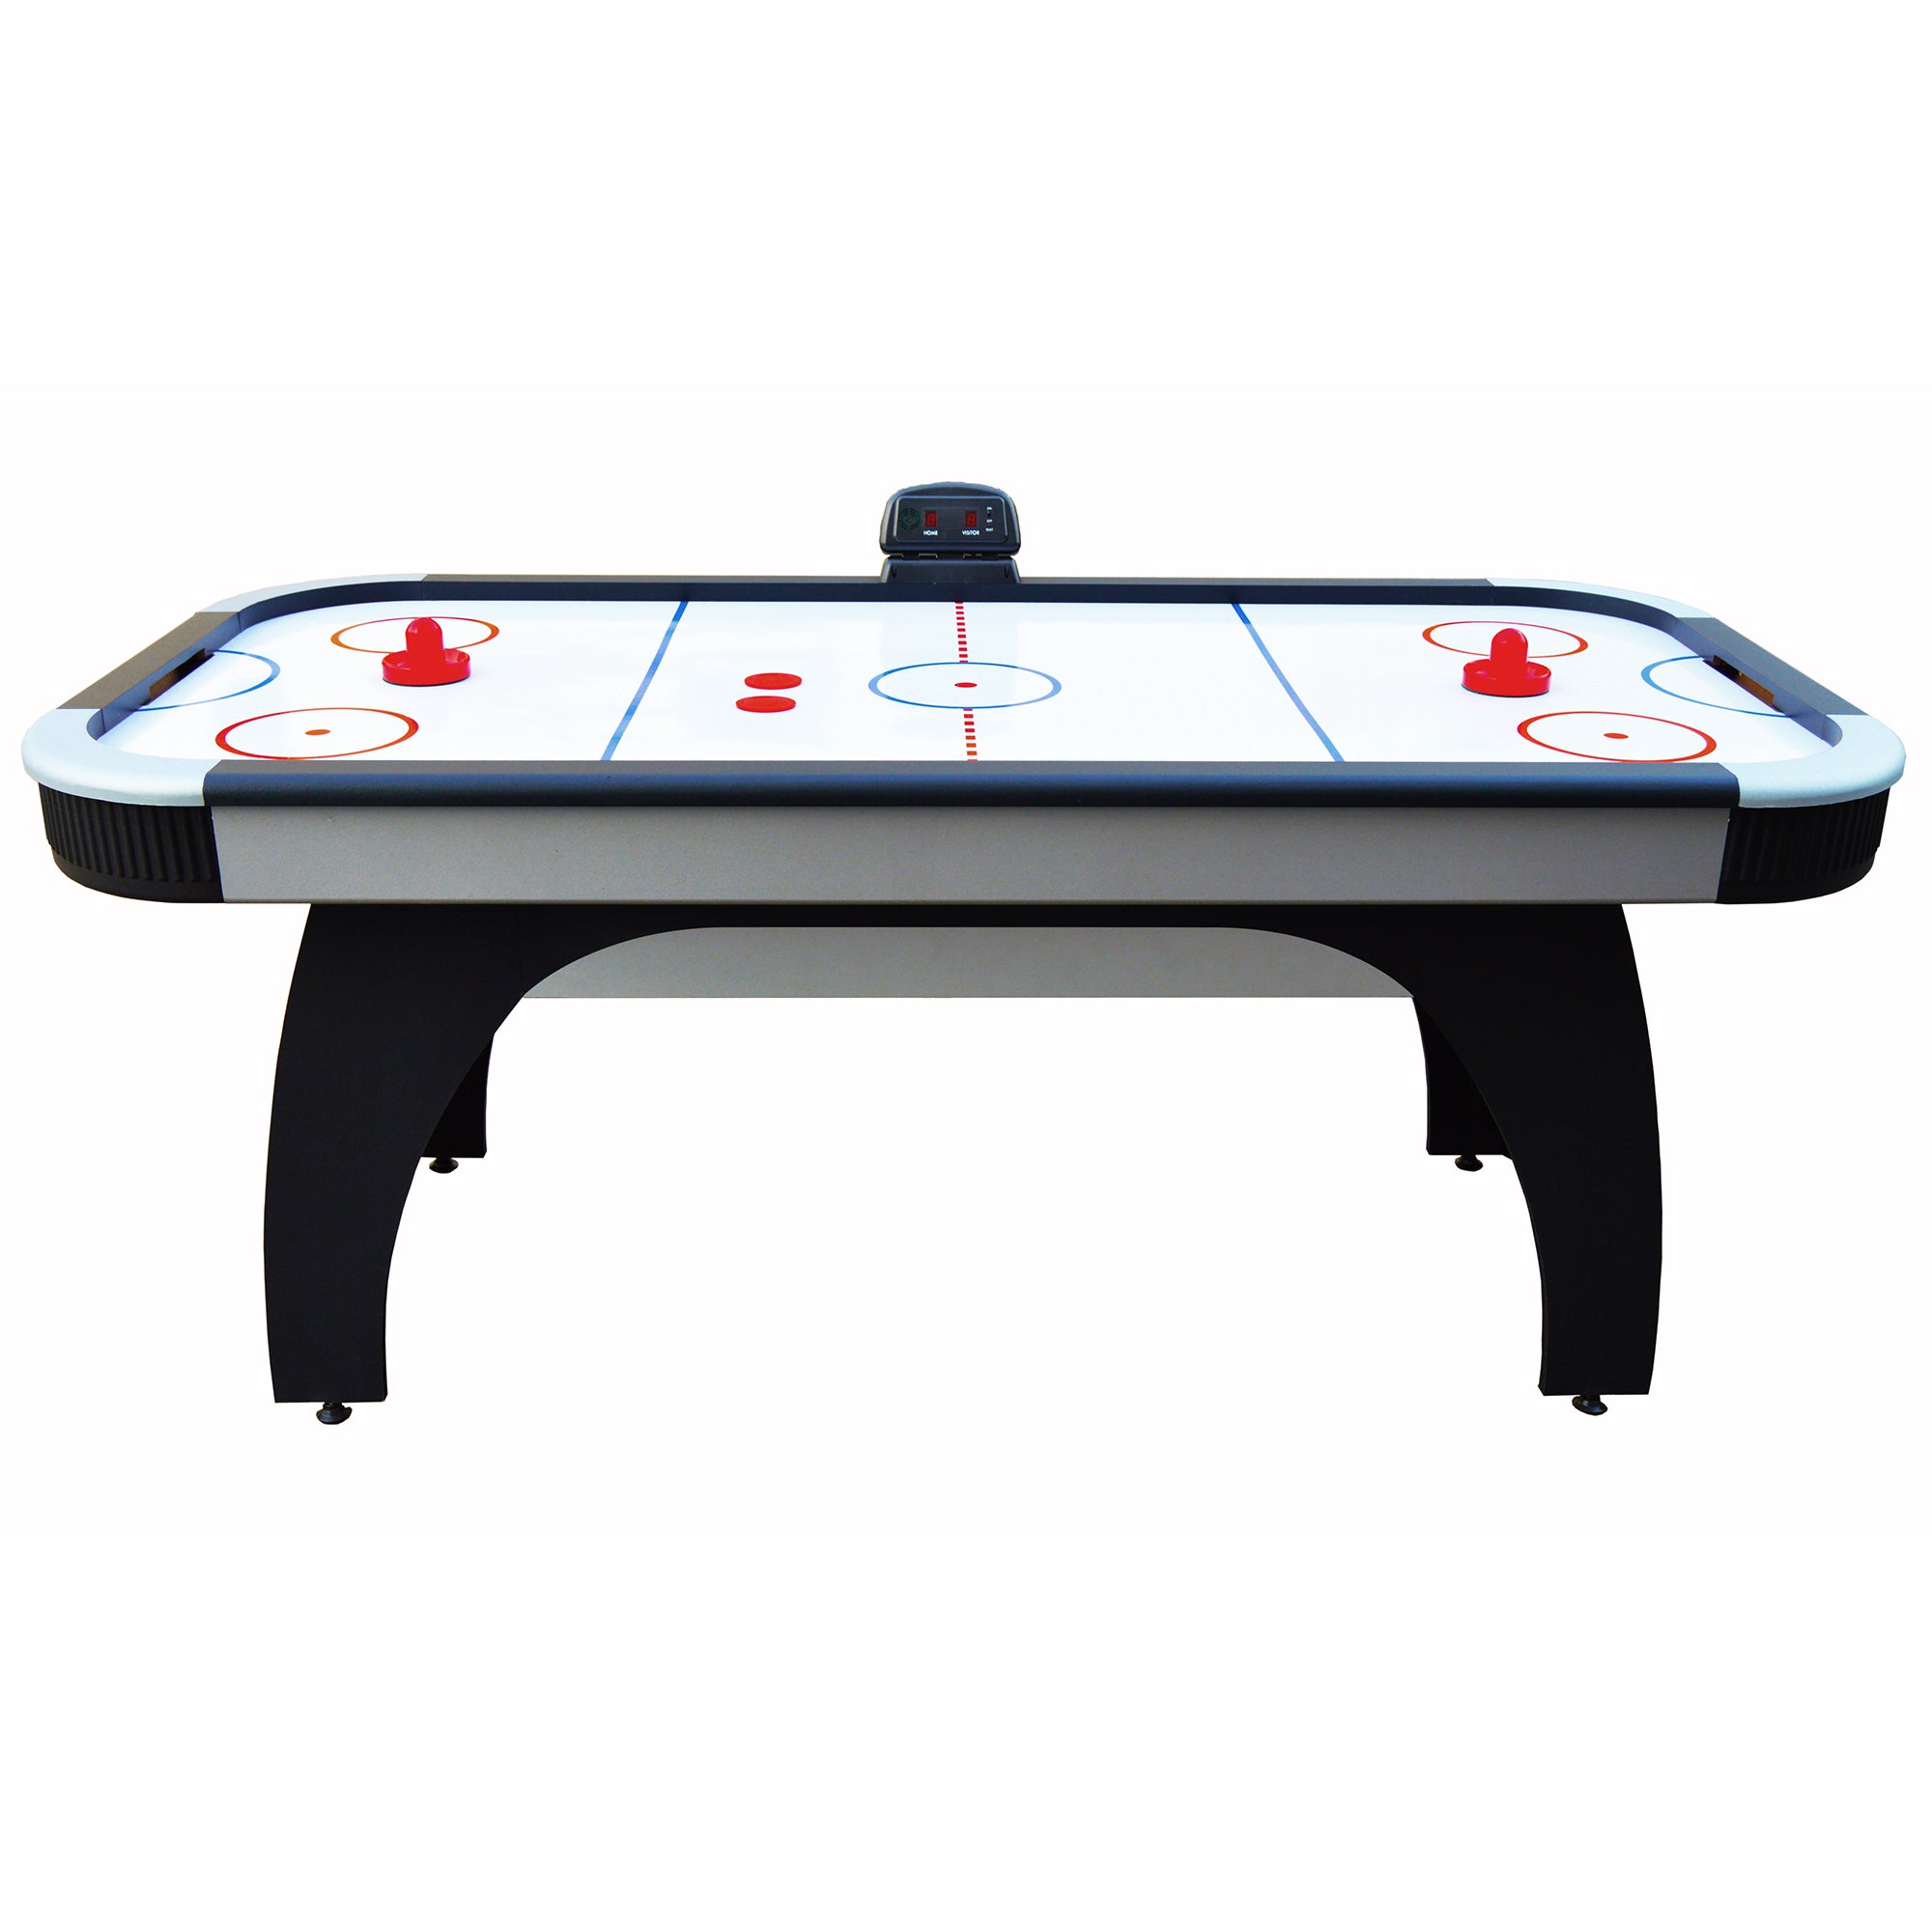 Awesome Hathaway Silverstreak 6 Ft Air Hockey Table   Free Shipping Today    Overstock   17762066